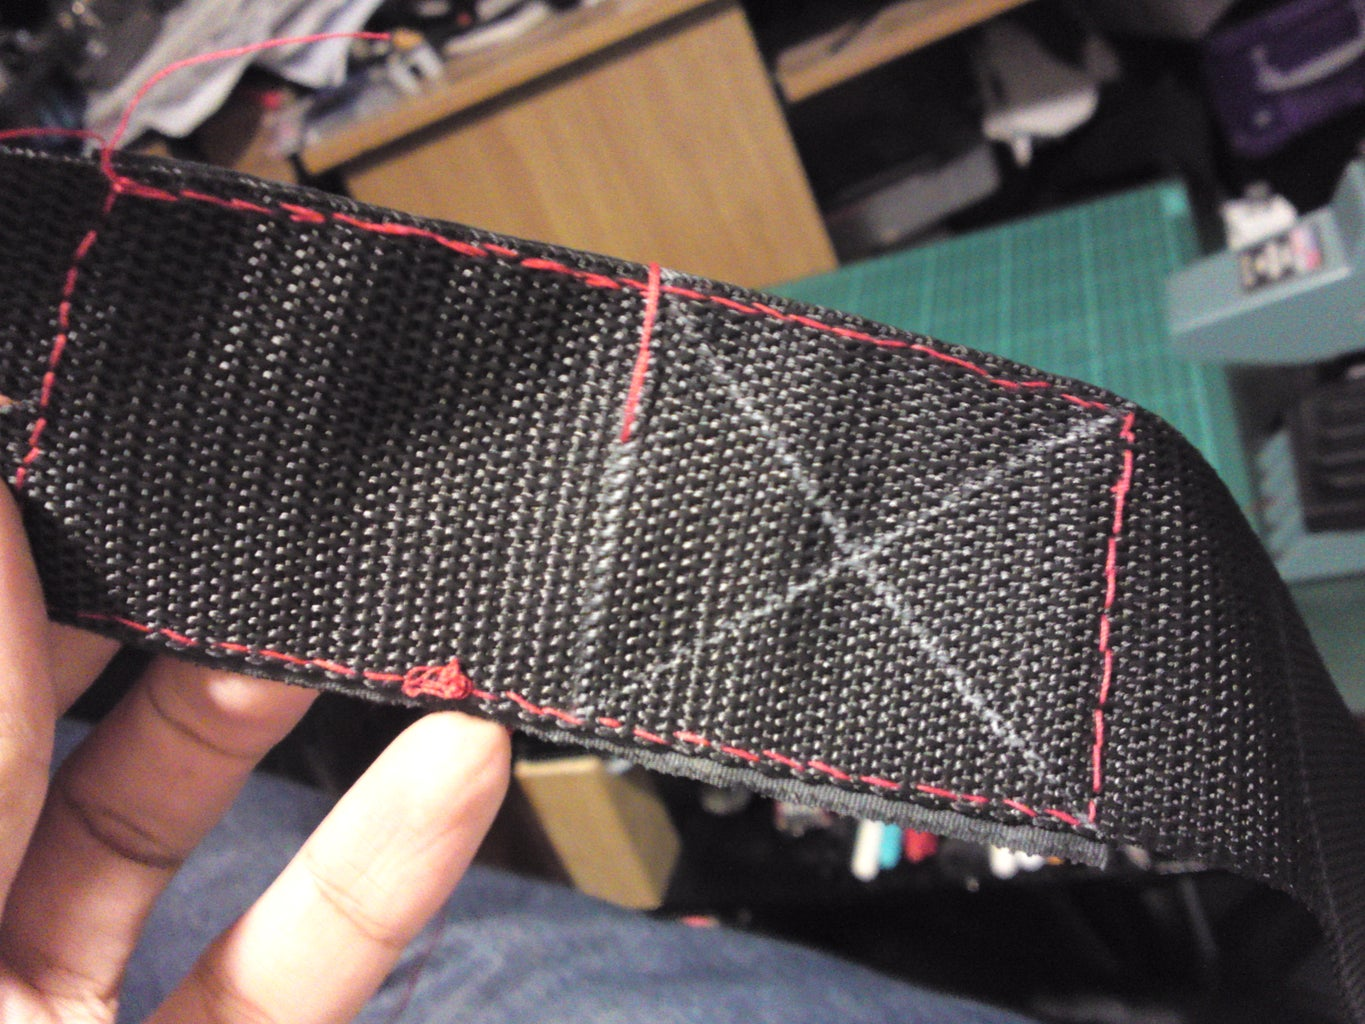 After 'Tacking' the Velcro in Place... Stitch All 4 of the Velcro Pieces Onto the 2 Straps...